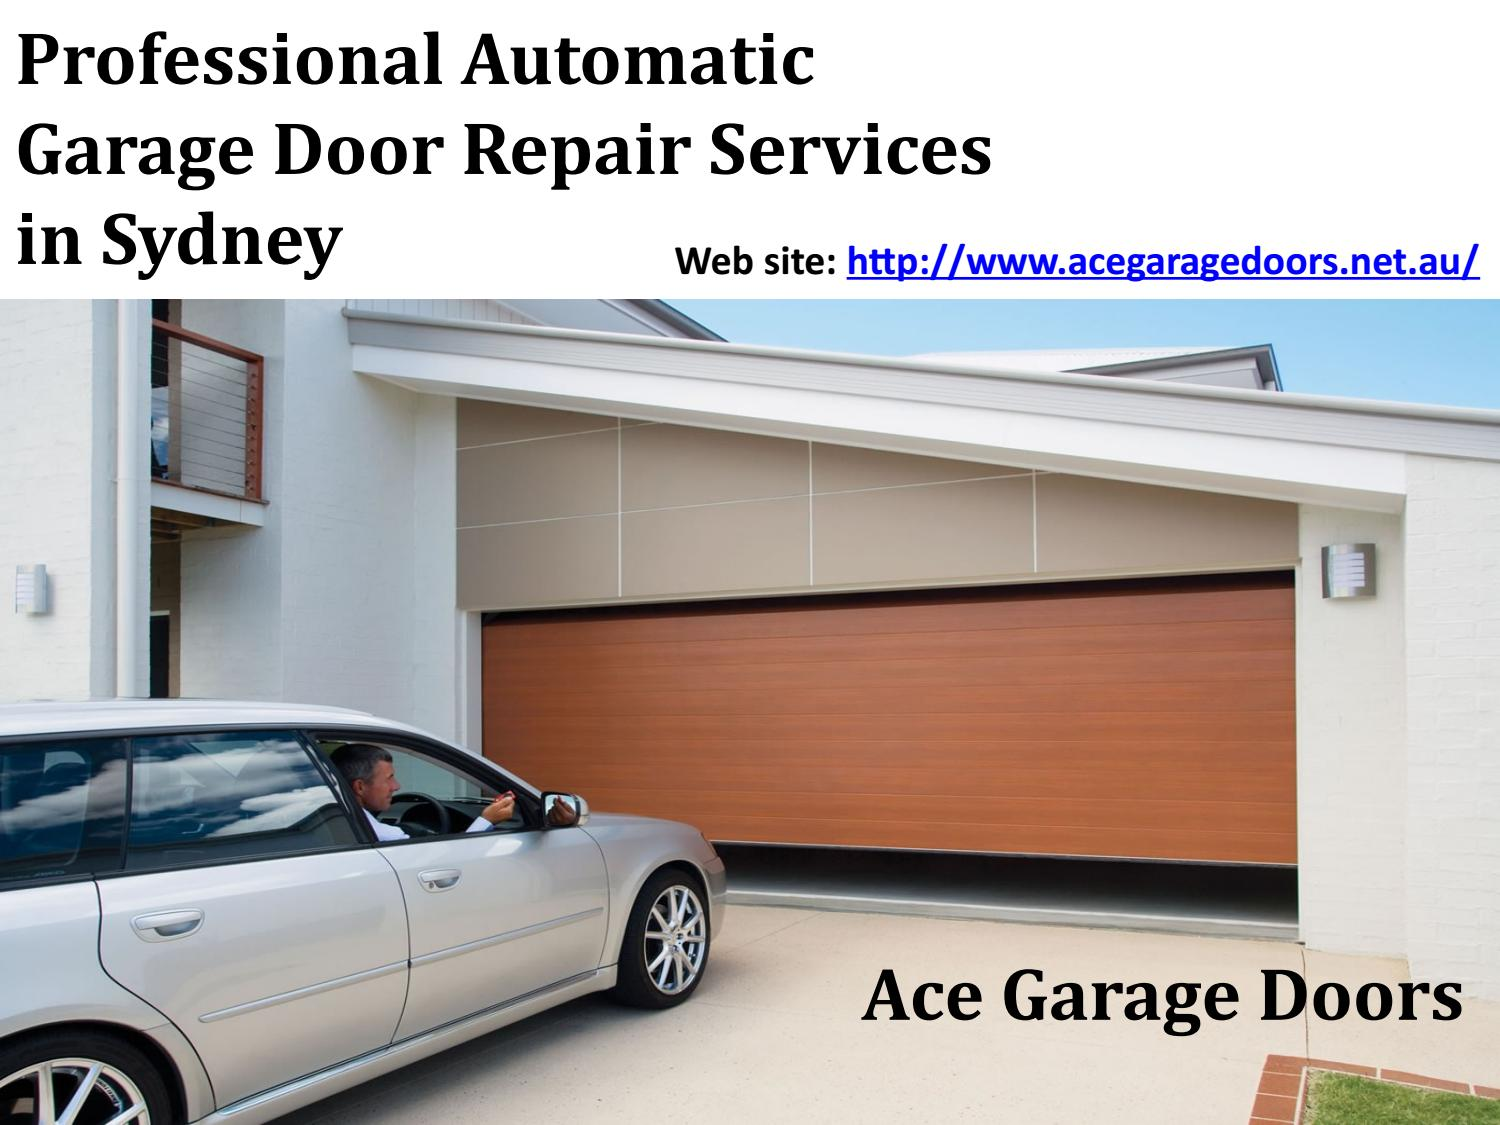 Professional Automatic Garage Door Repair Services In Sydney By